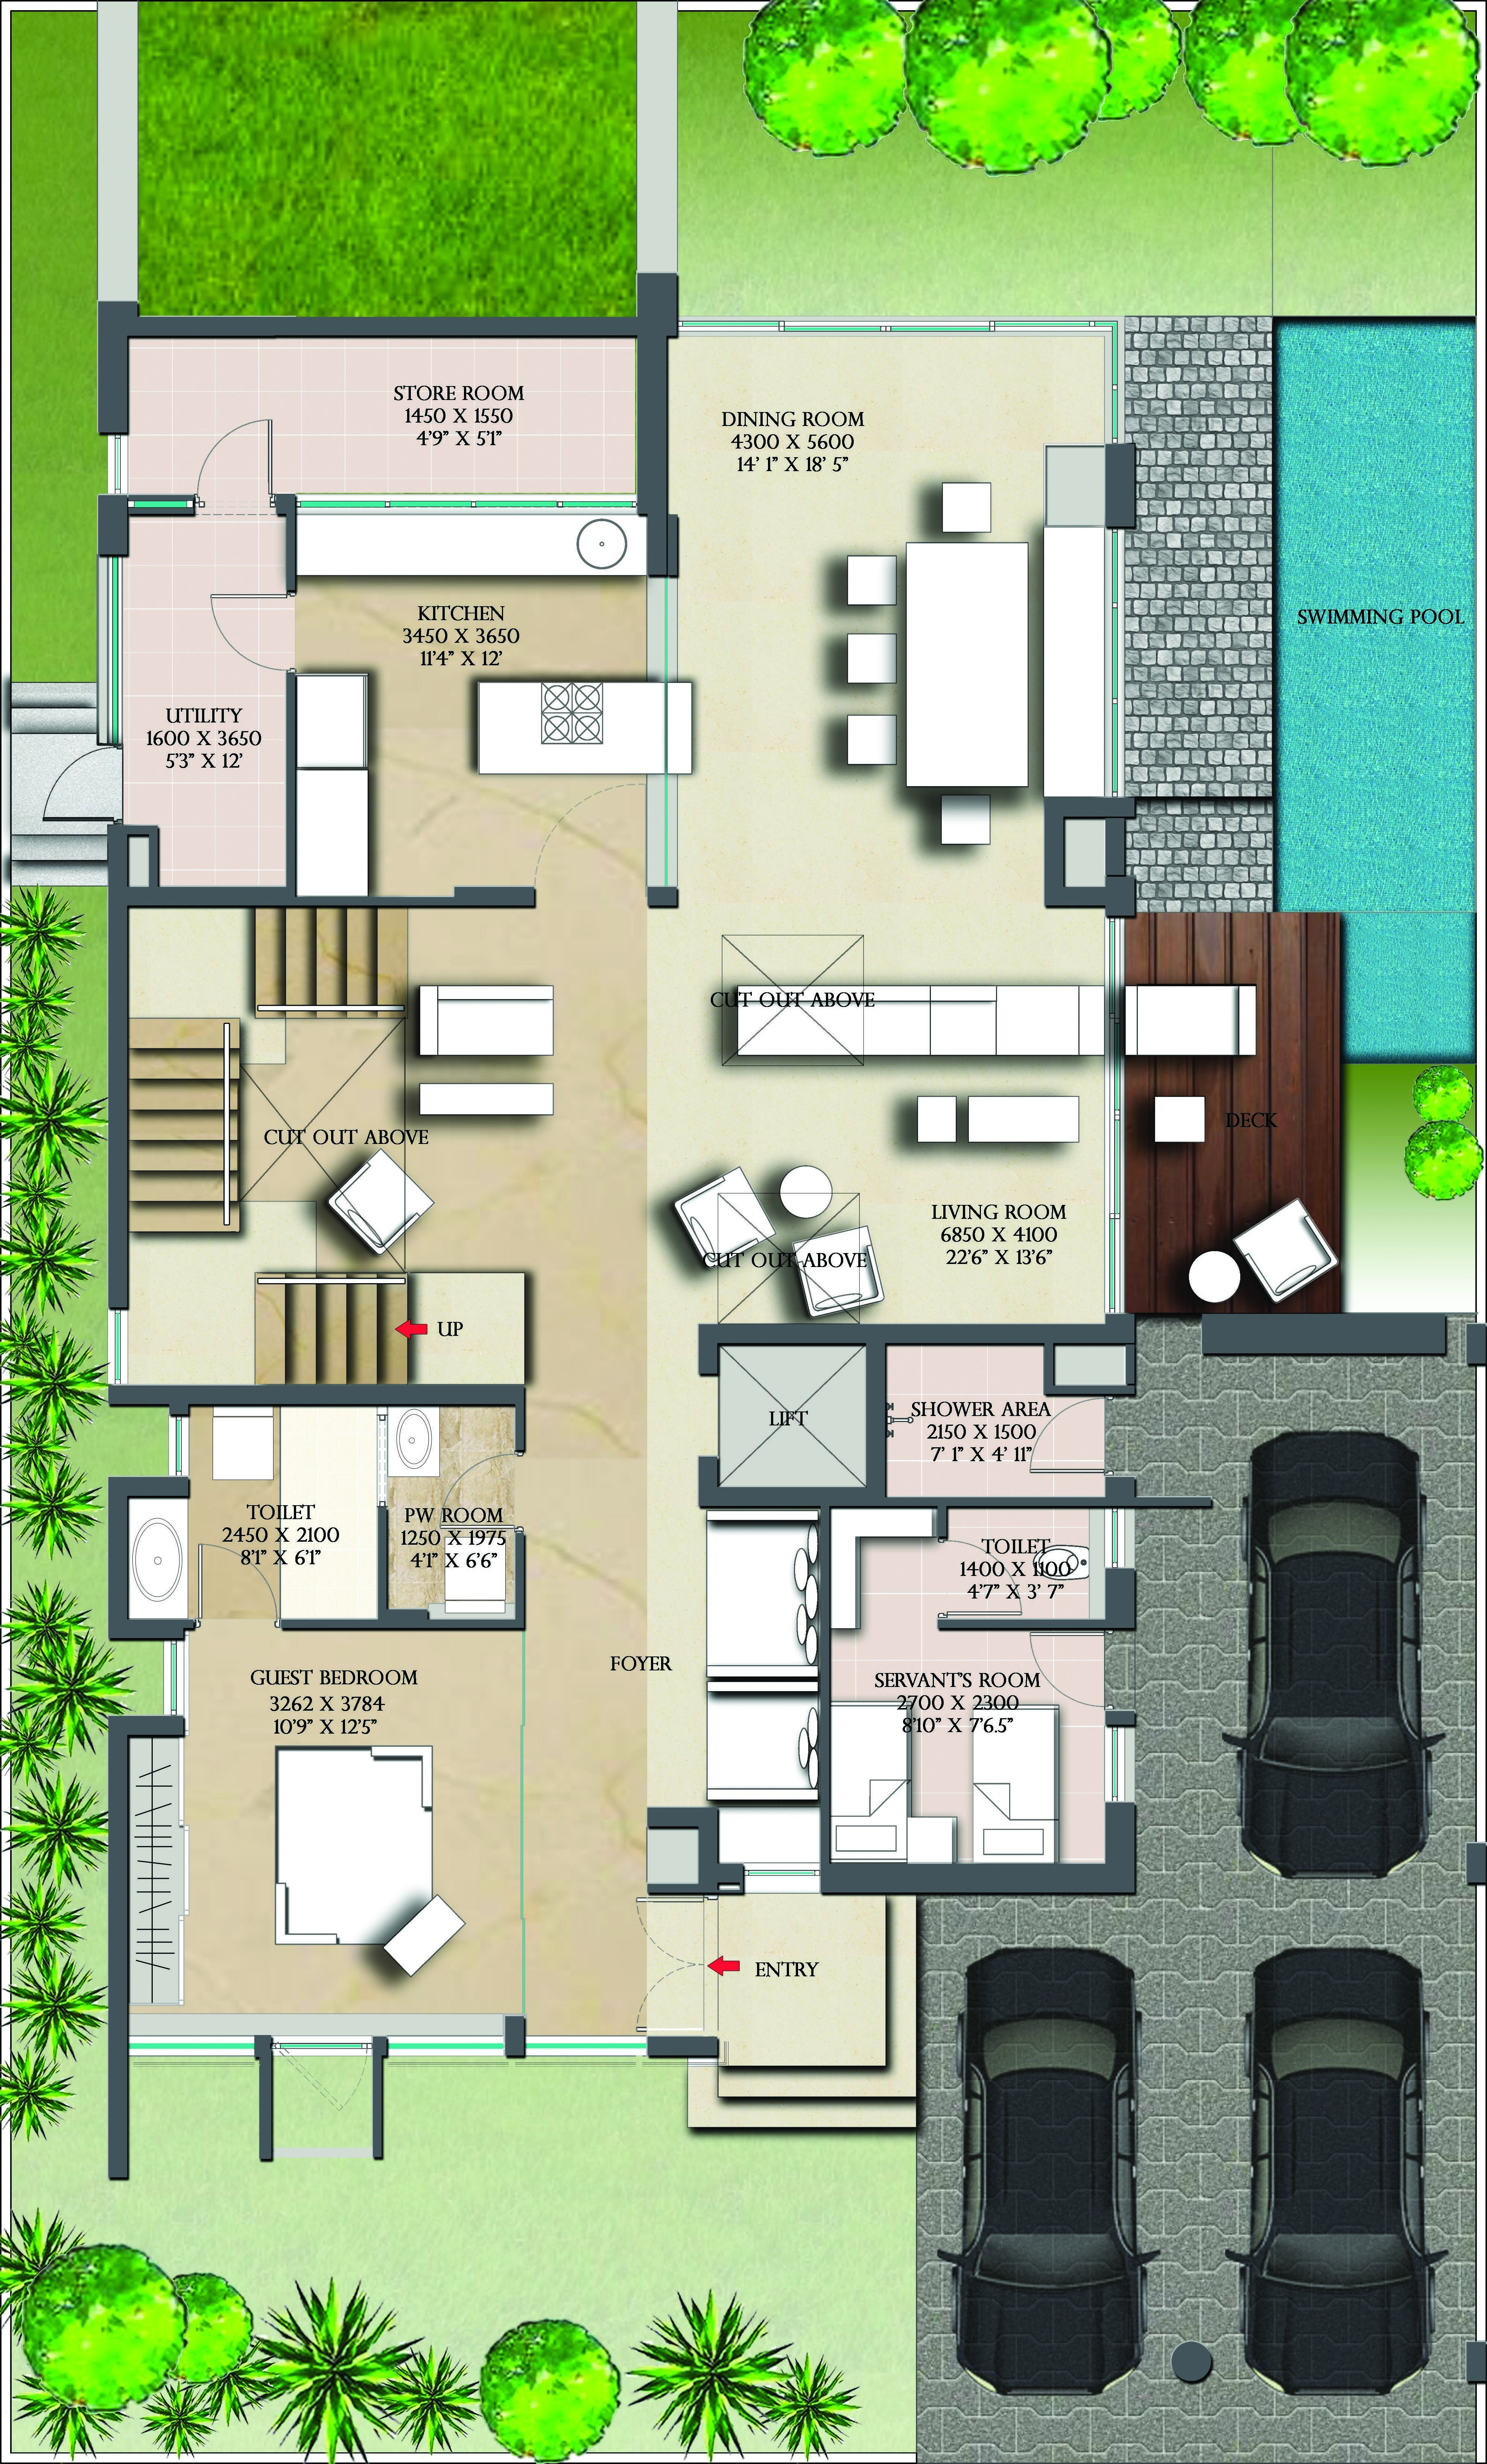 Ground Floor South Facing New House Plans Best Home Plans New Home Designs